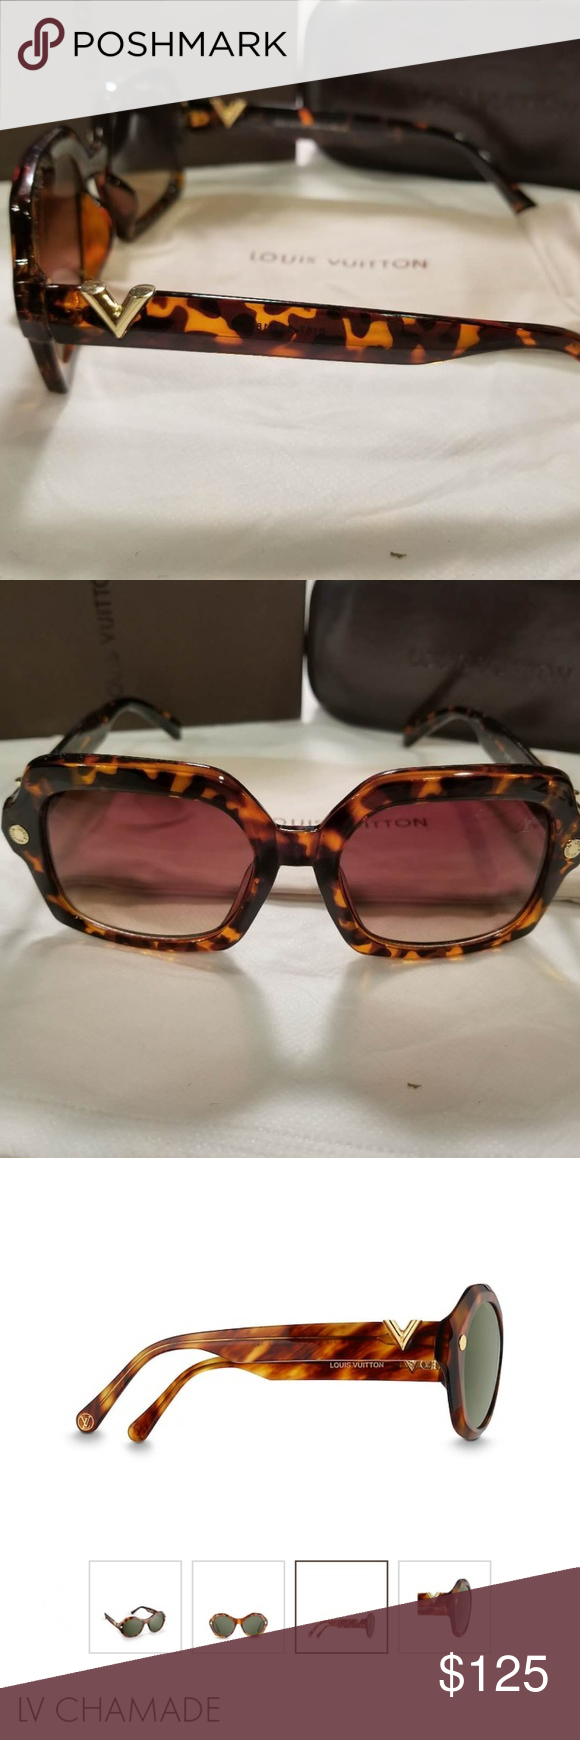 4a6f9c81318 Women s LV Chamade Sunglasses Brown and Gold Women s LV Chamade Sunglasses  Louis Vuitton Accessories Sunglasses